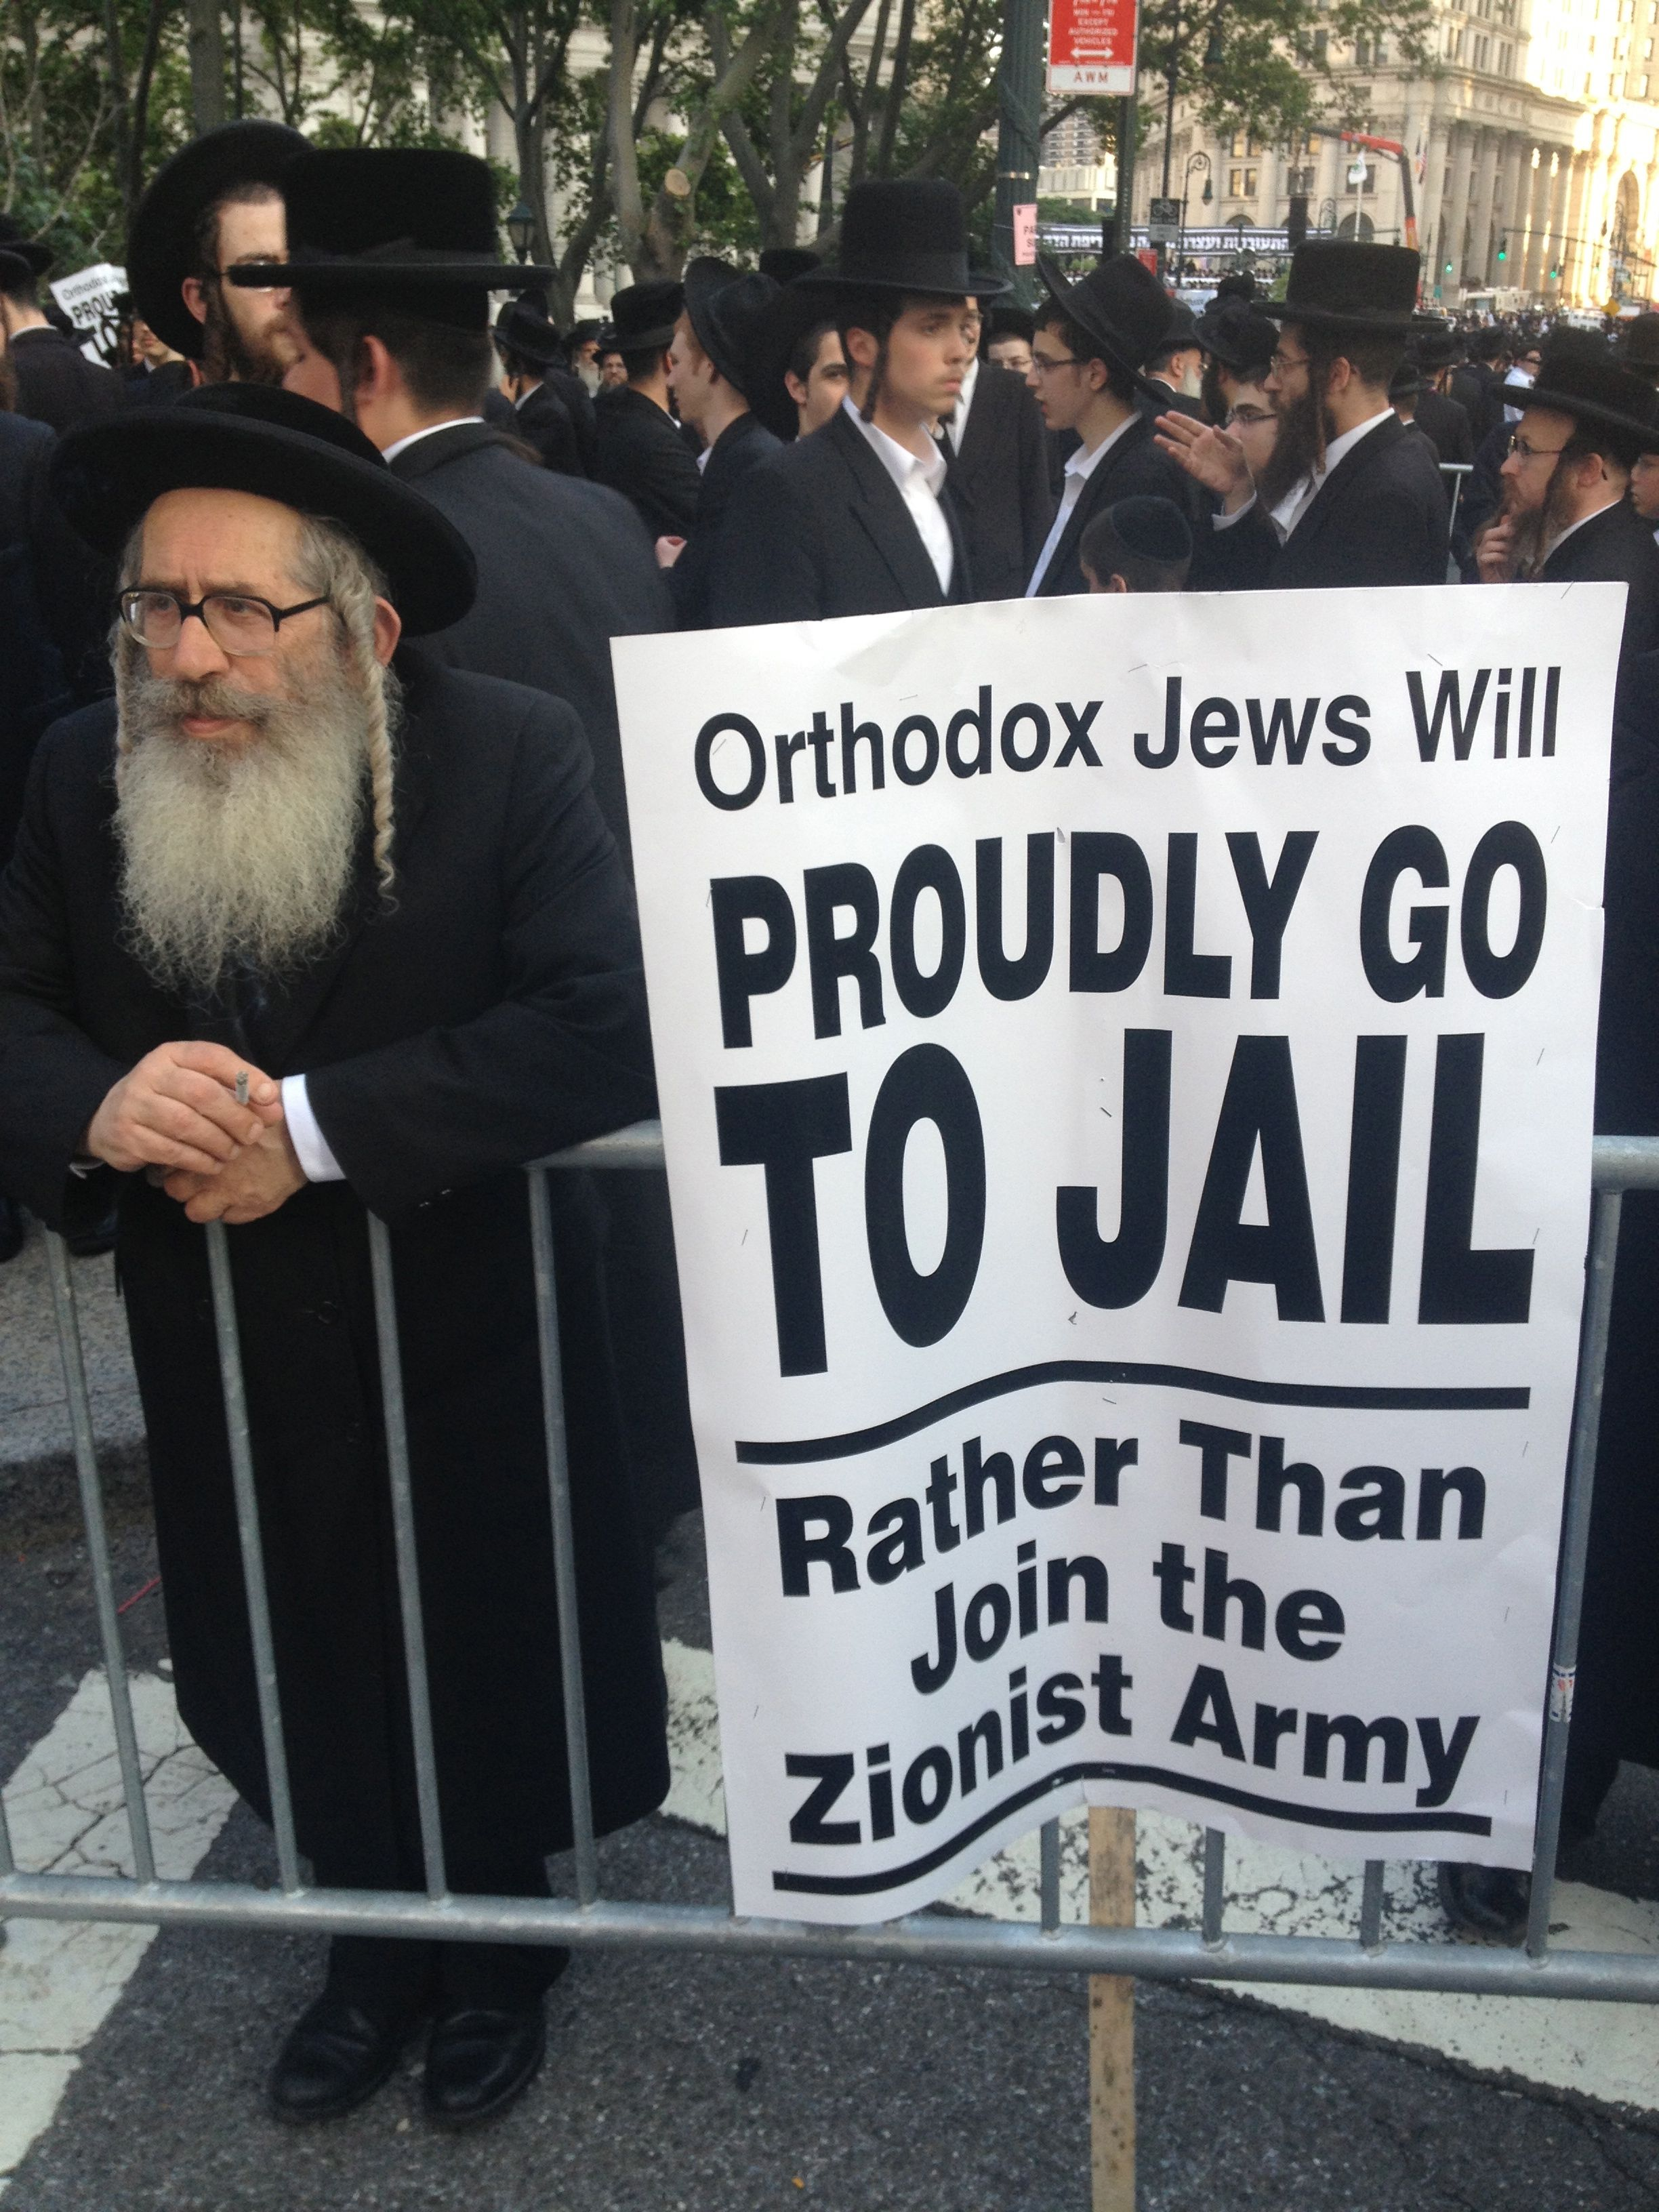 A haredi Orthodox Jew protests the proposed drafting of ultra-Orthodox Israelis in the army.